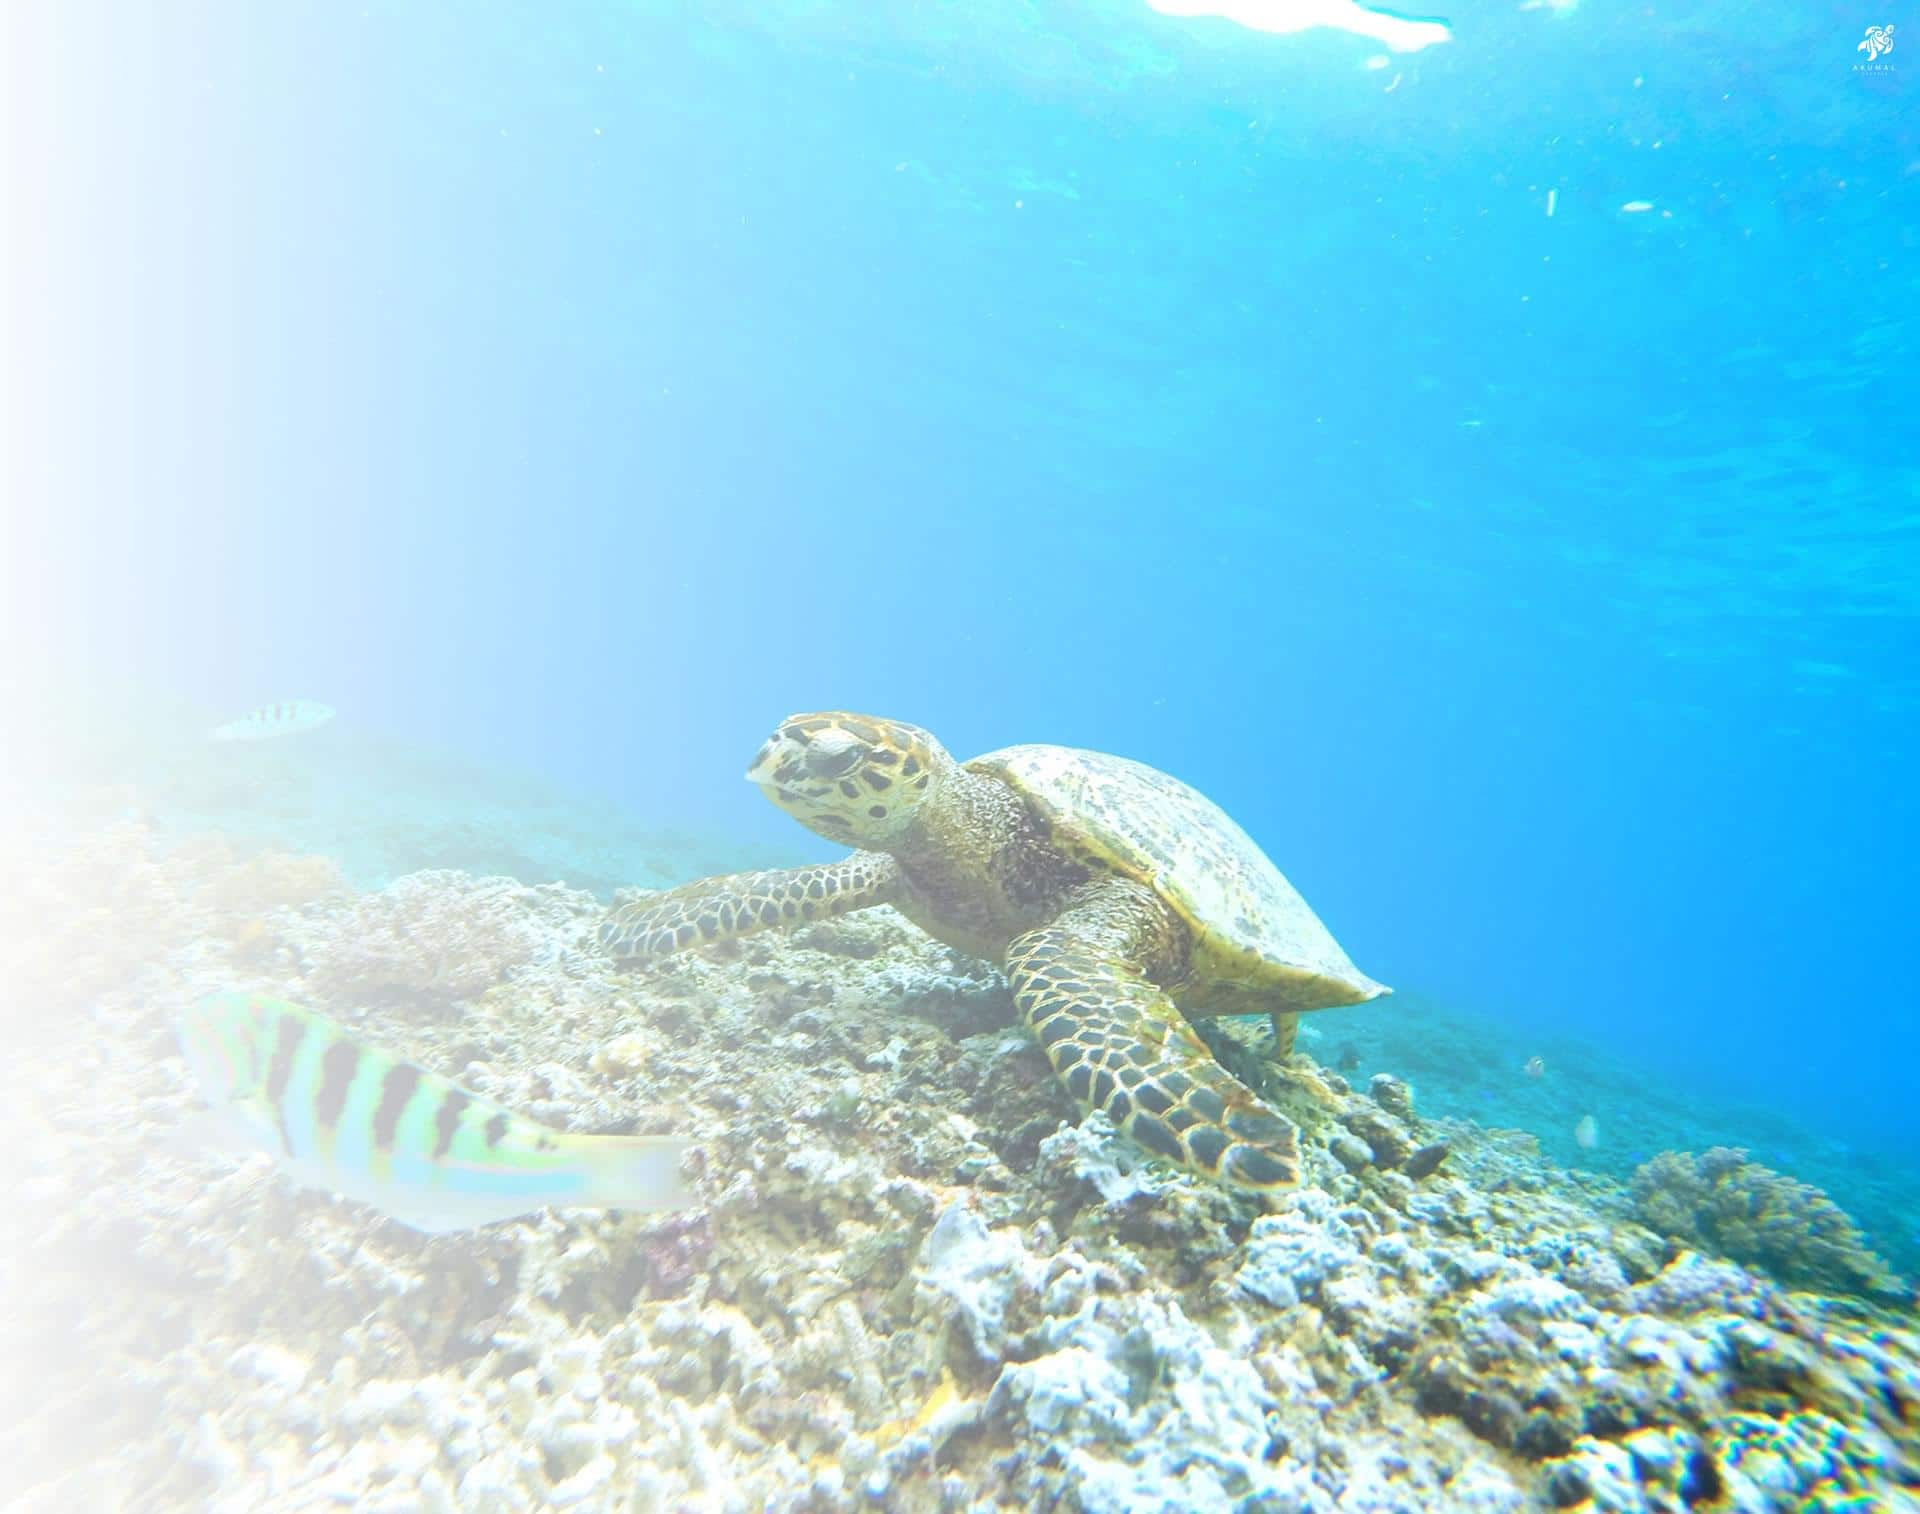 A green turtle forages for food on the reef